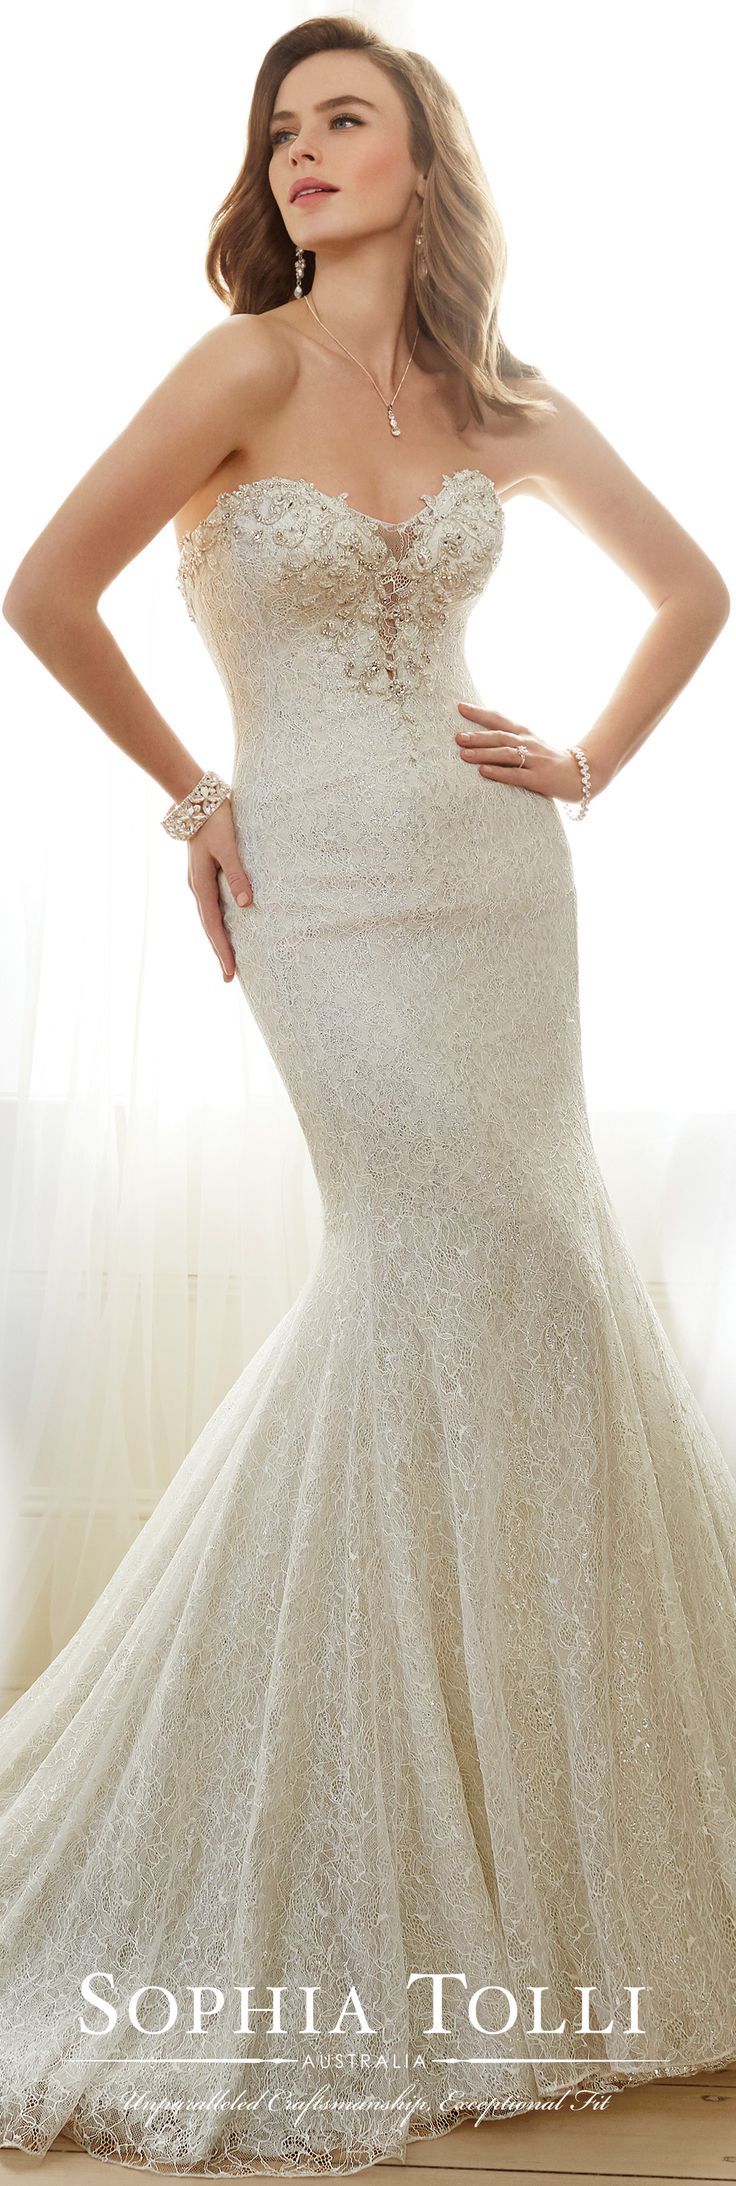 85 best Mermaid Wedding Dresses images on Pinterest | Wedding frocks ...